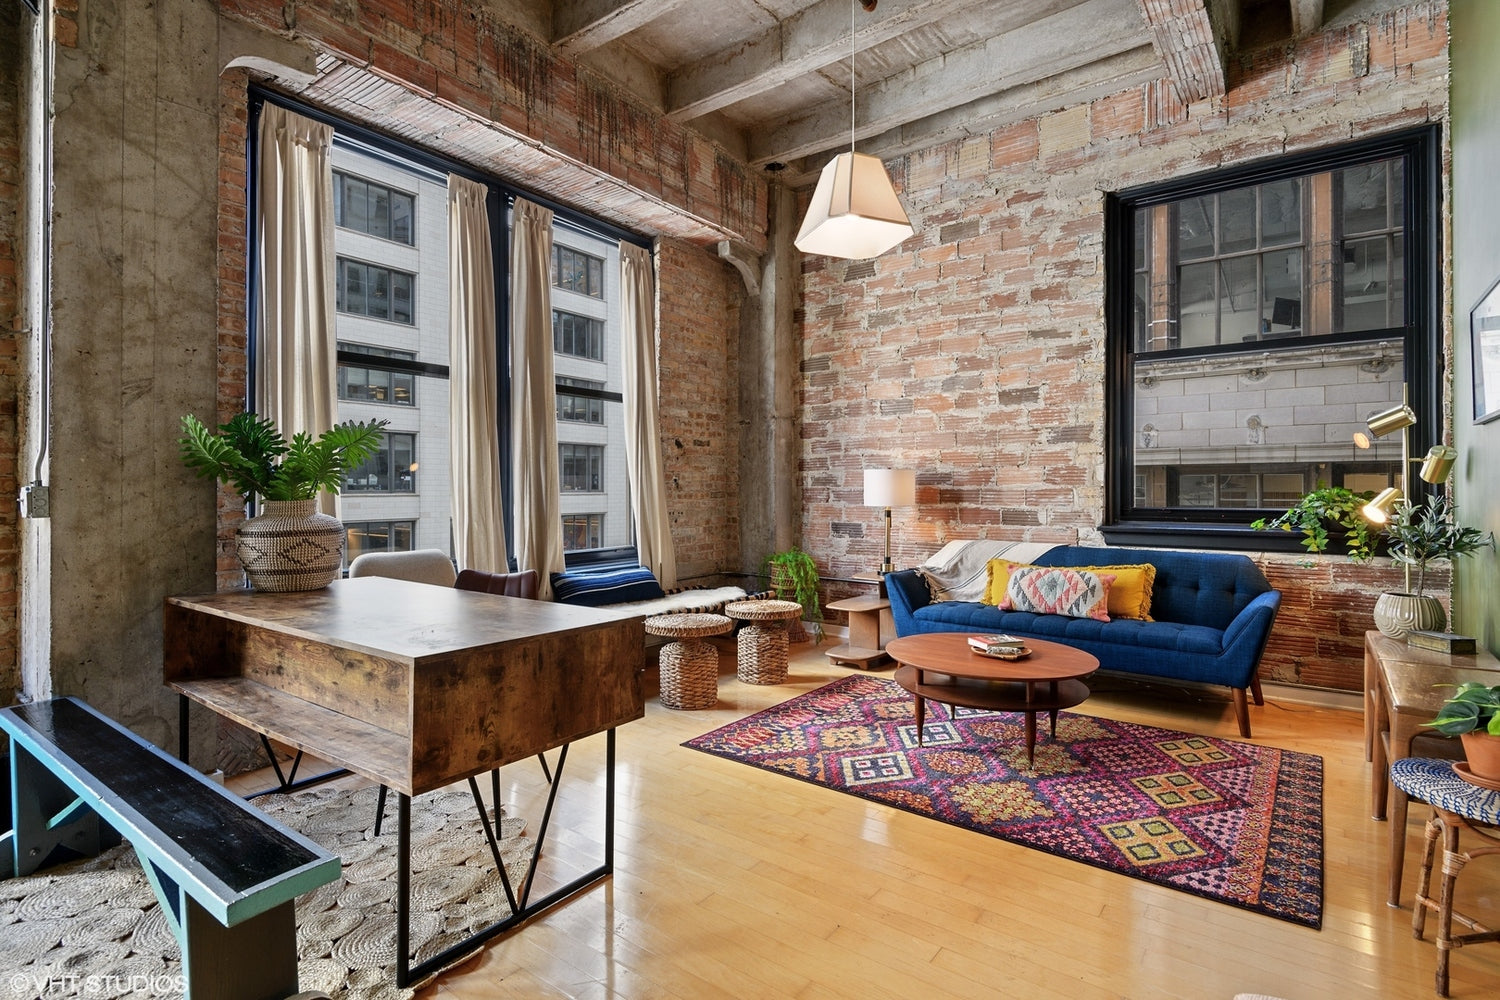 See more of Eskell's real estate staging and staging tips for the Chicago real estate market.